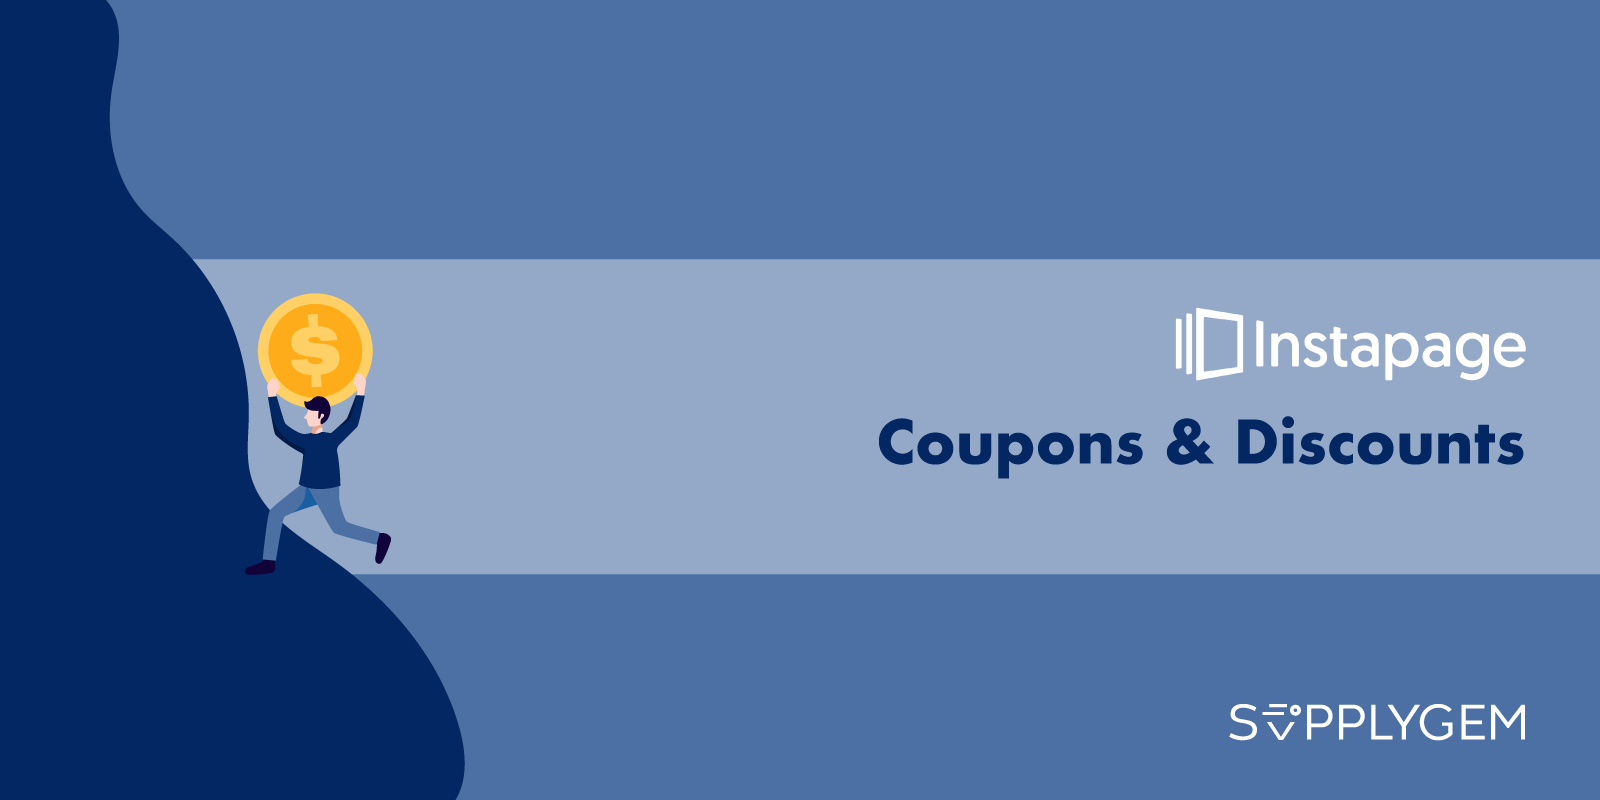 Instapage Coupons & Discounts